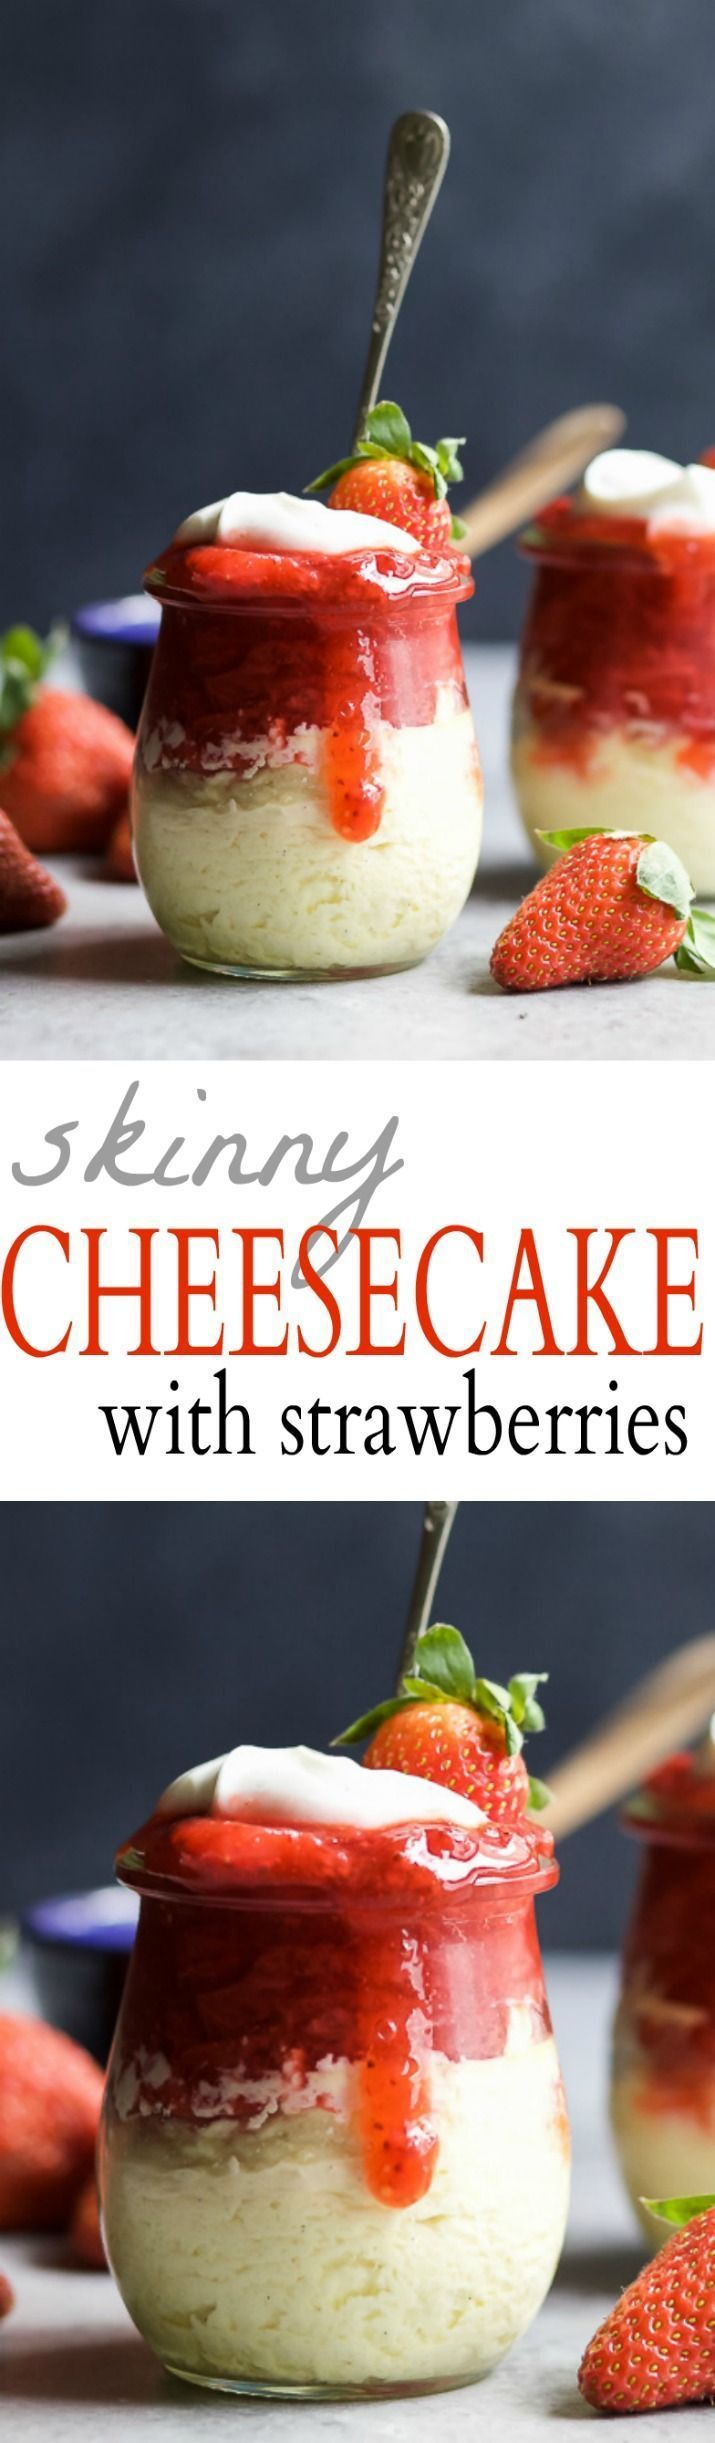 SKINNY CHEESECAKE for two made with greek yogurt and topped with fresh strawberries slightly sweetened with honey. The perfect healthy sweet dessert for those late night cravings!   http://joyfulhealthyeats.com